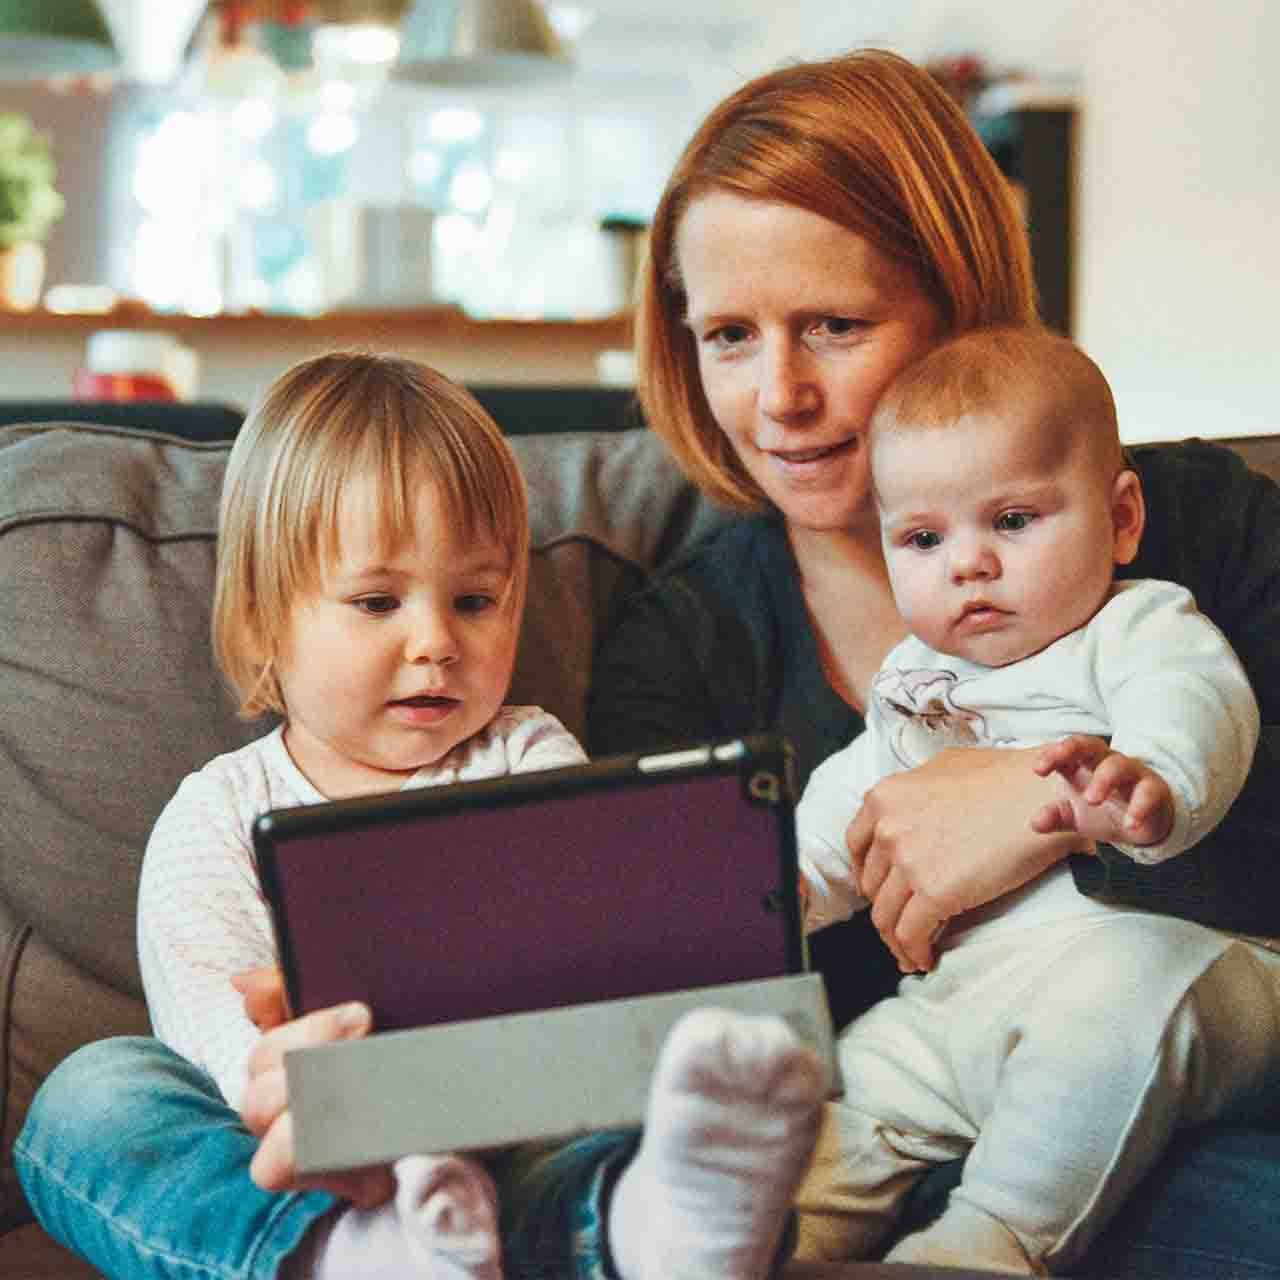 Young family in their living room looking at a tablet.